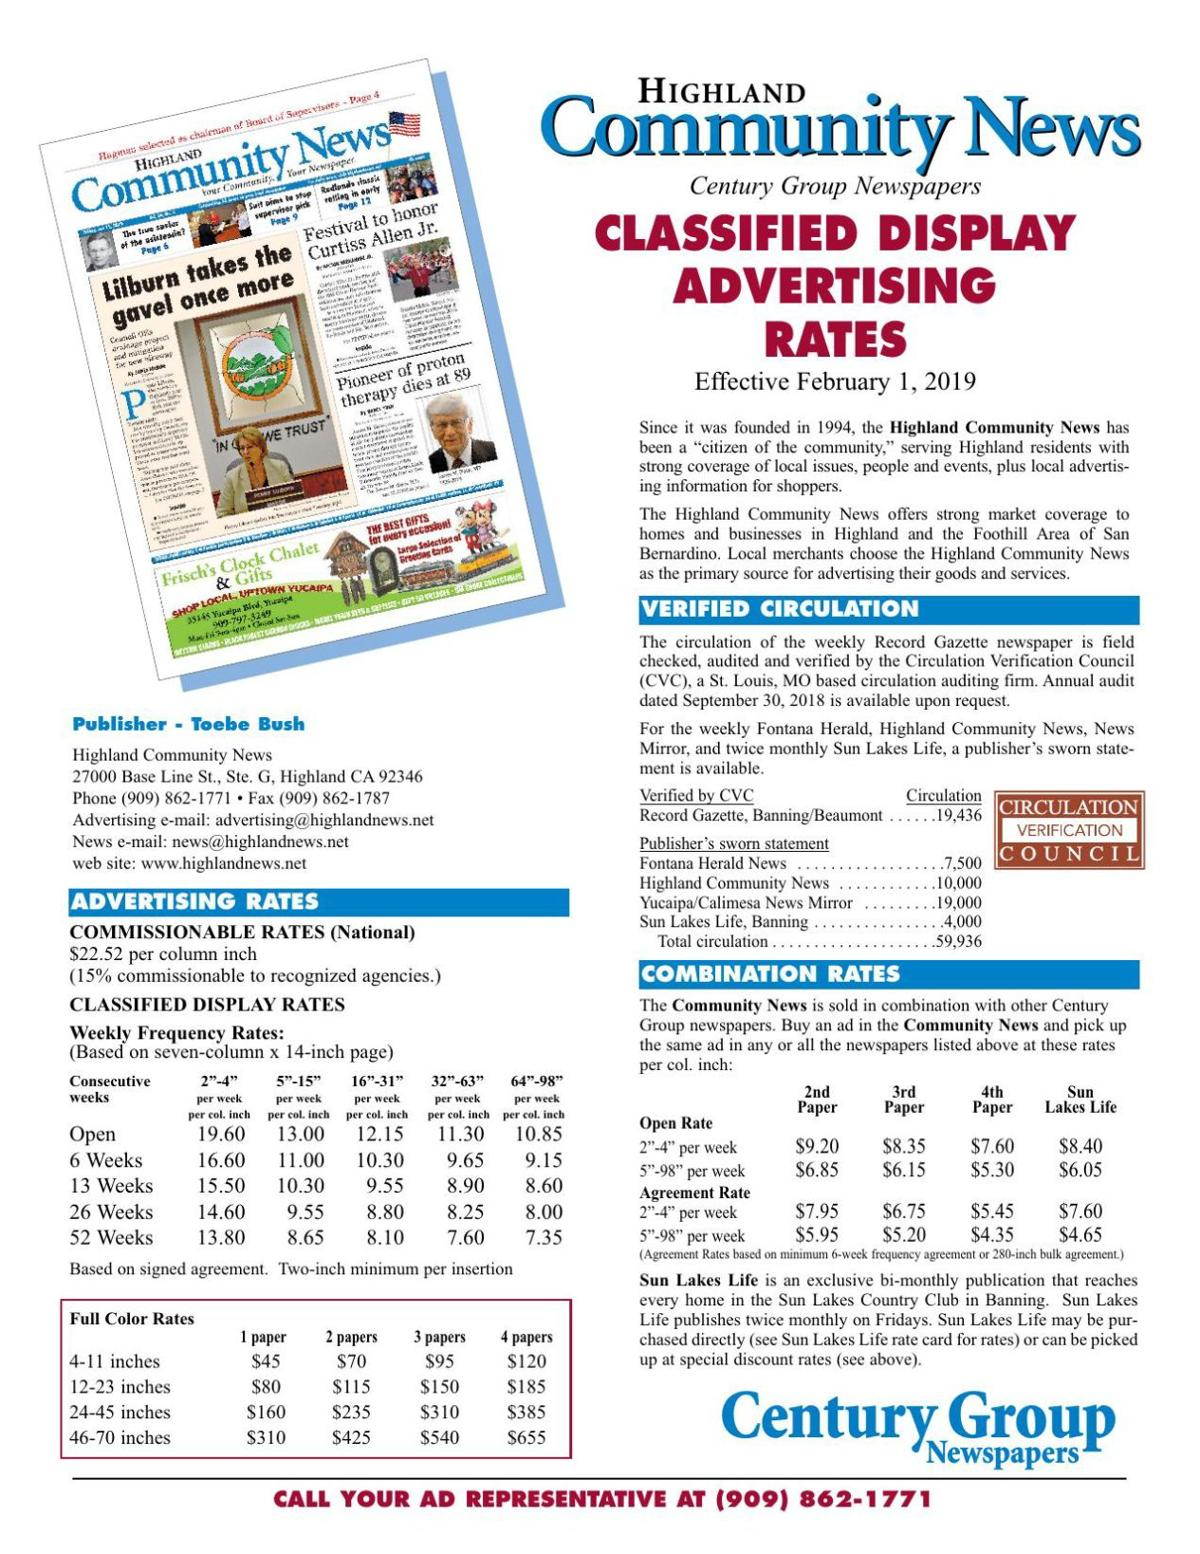 Community News - Classified Display Rates